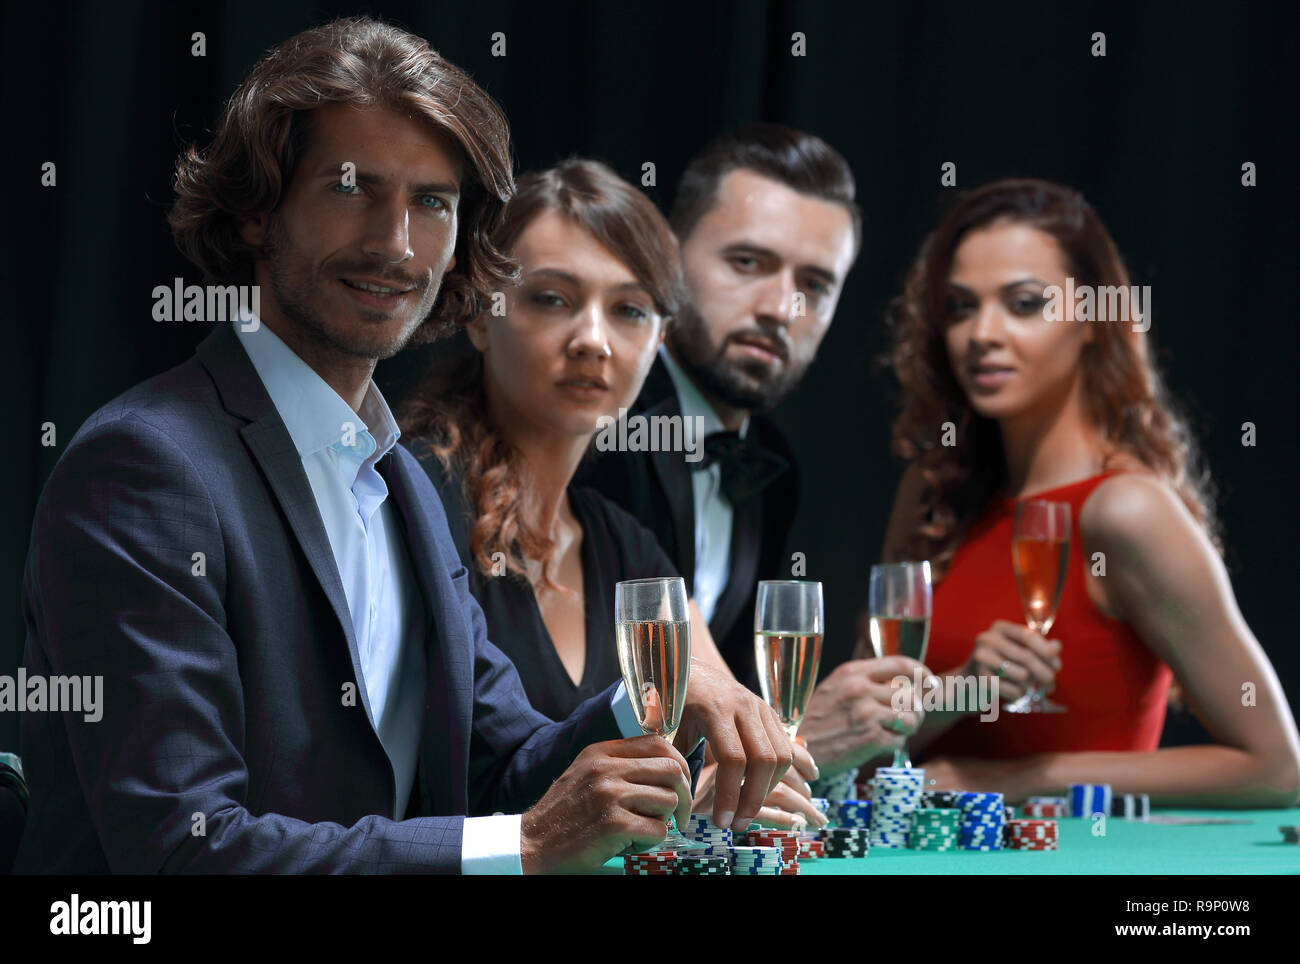 Poker players drink champagne on a black background - Stock Image